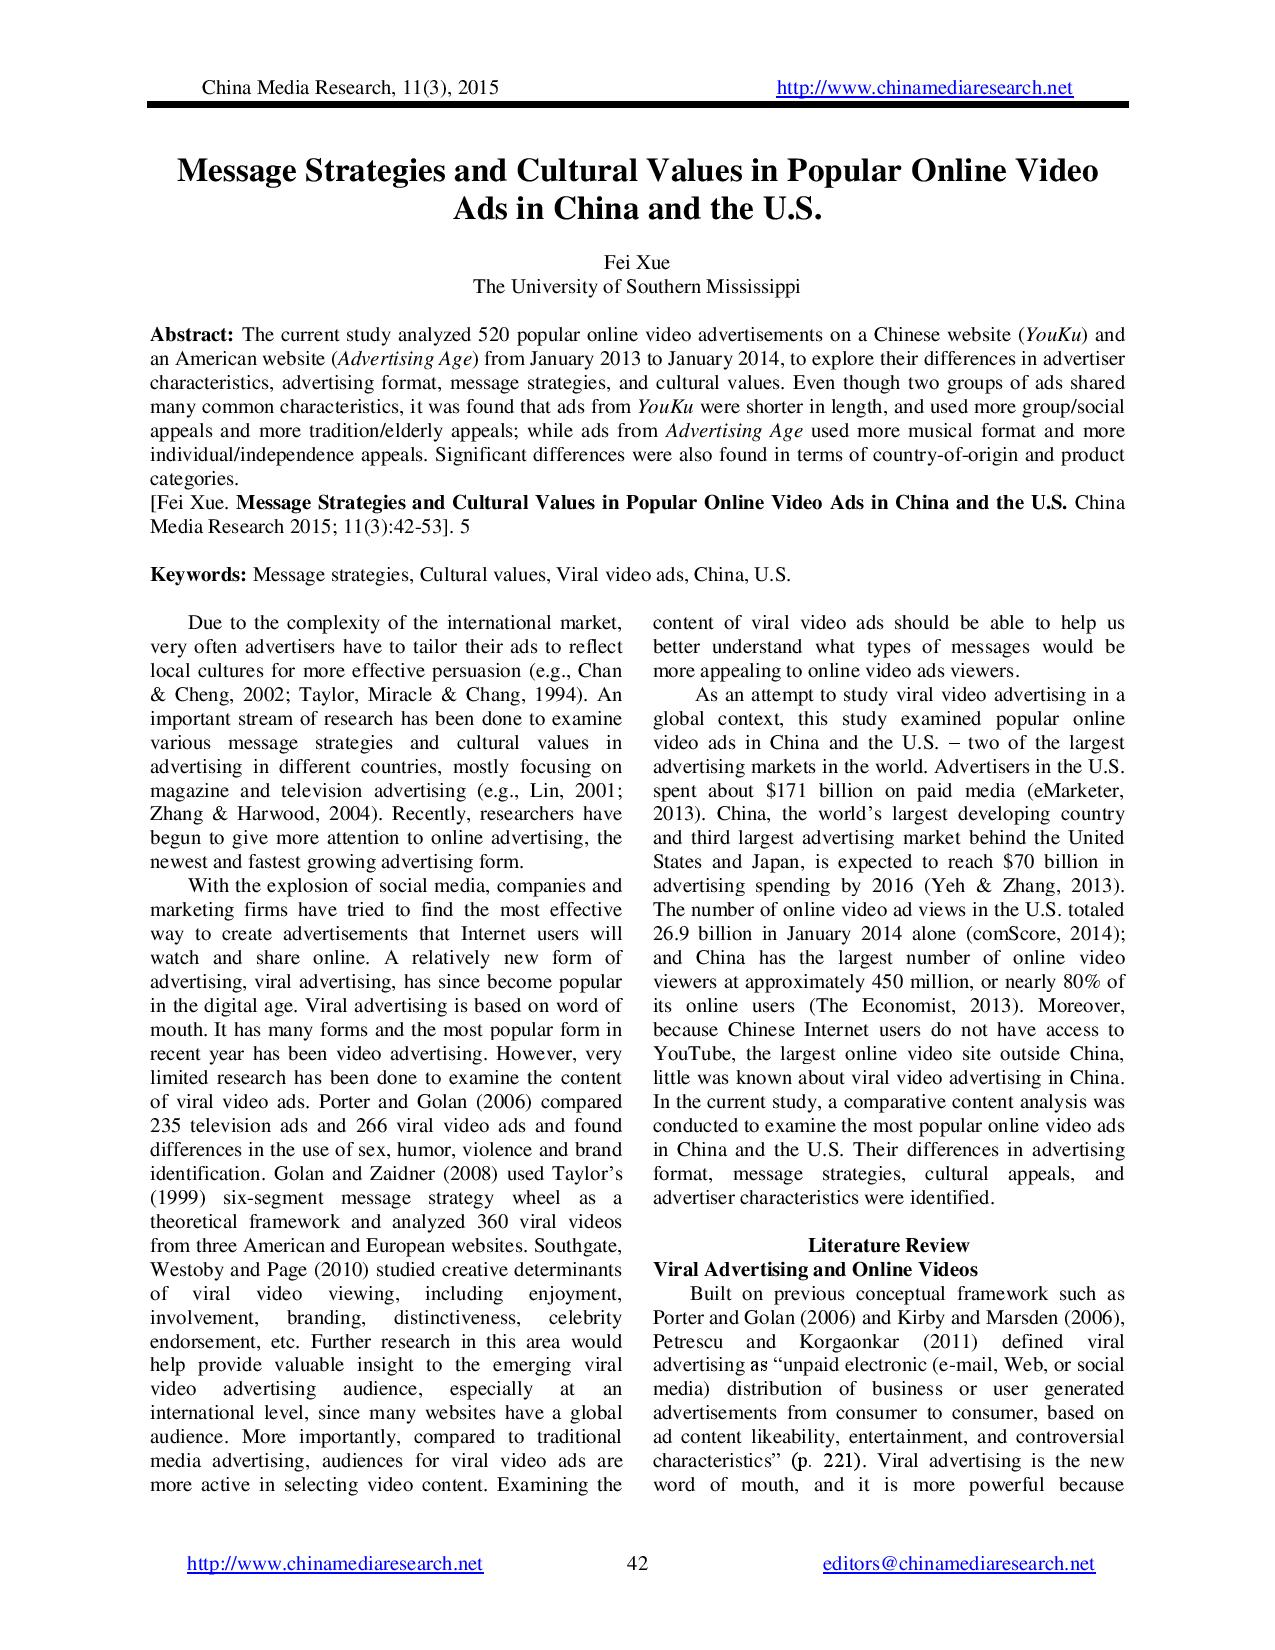 Grapes Of Wrath American Dream Essay Essay And General Terrorism